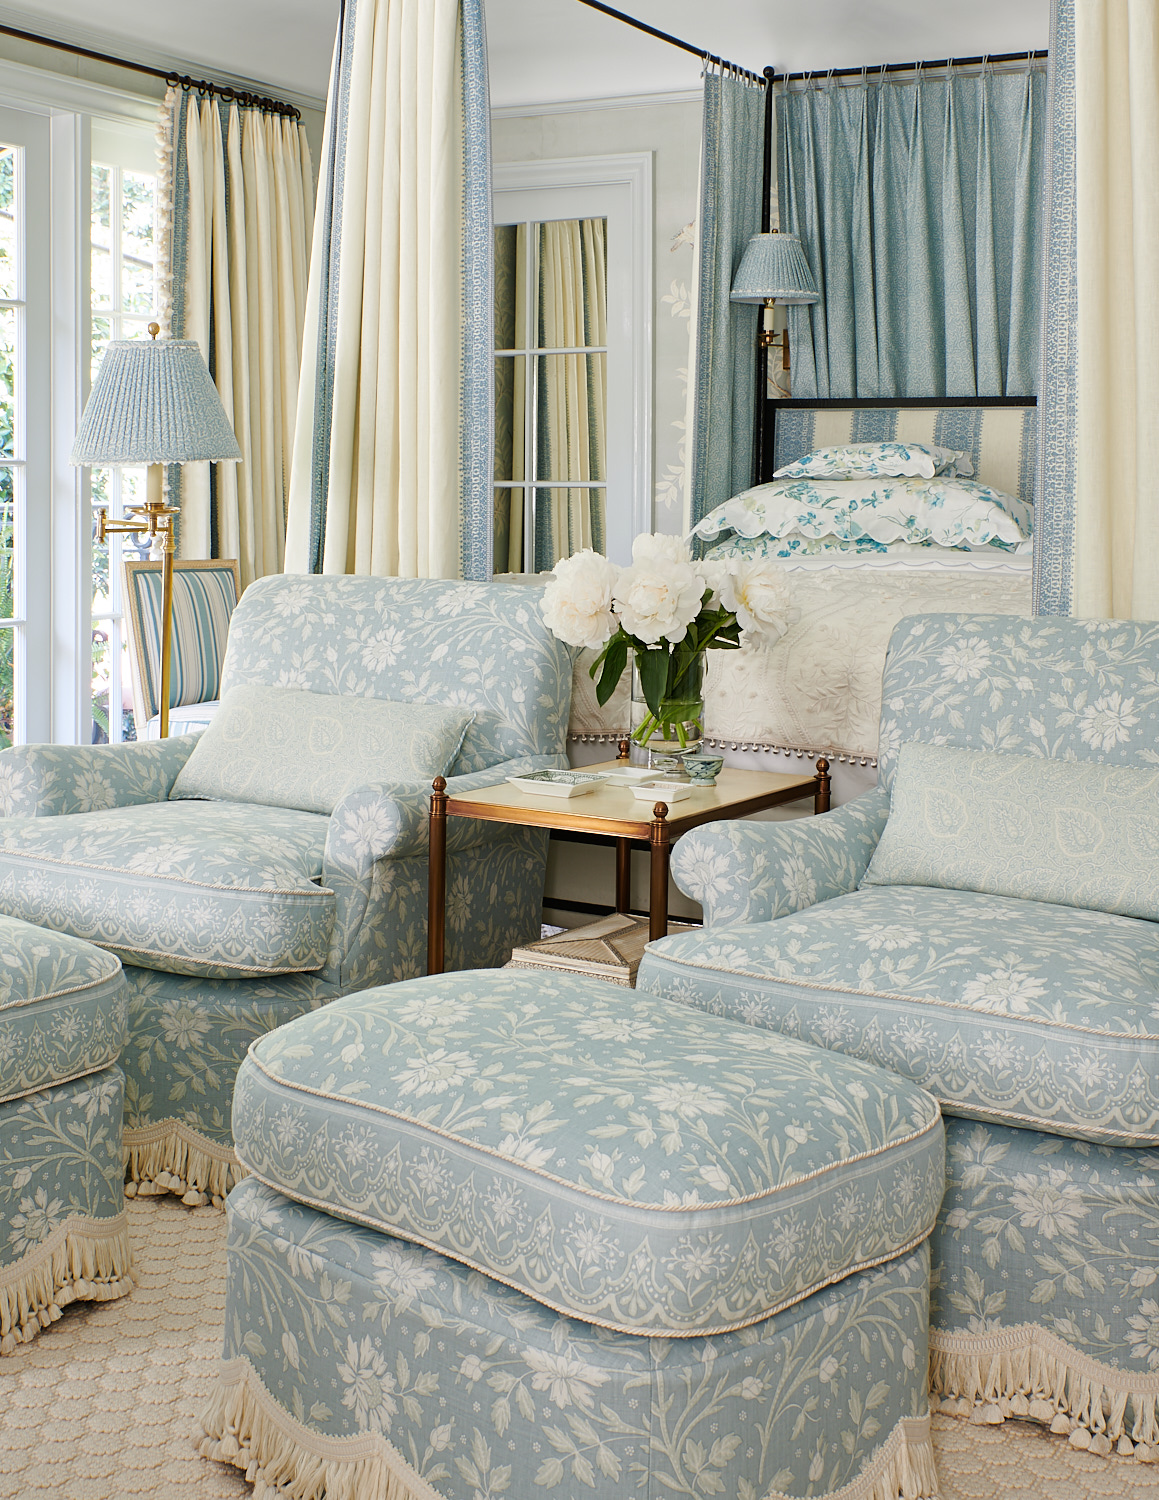 Dual floral upholstered club chairs with matching ottomans